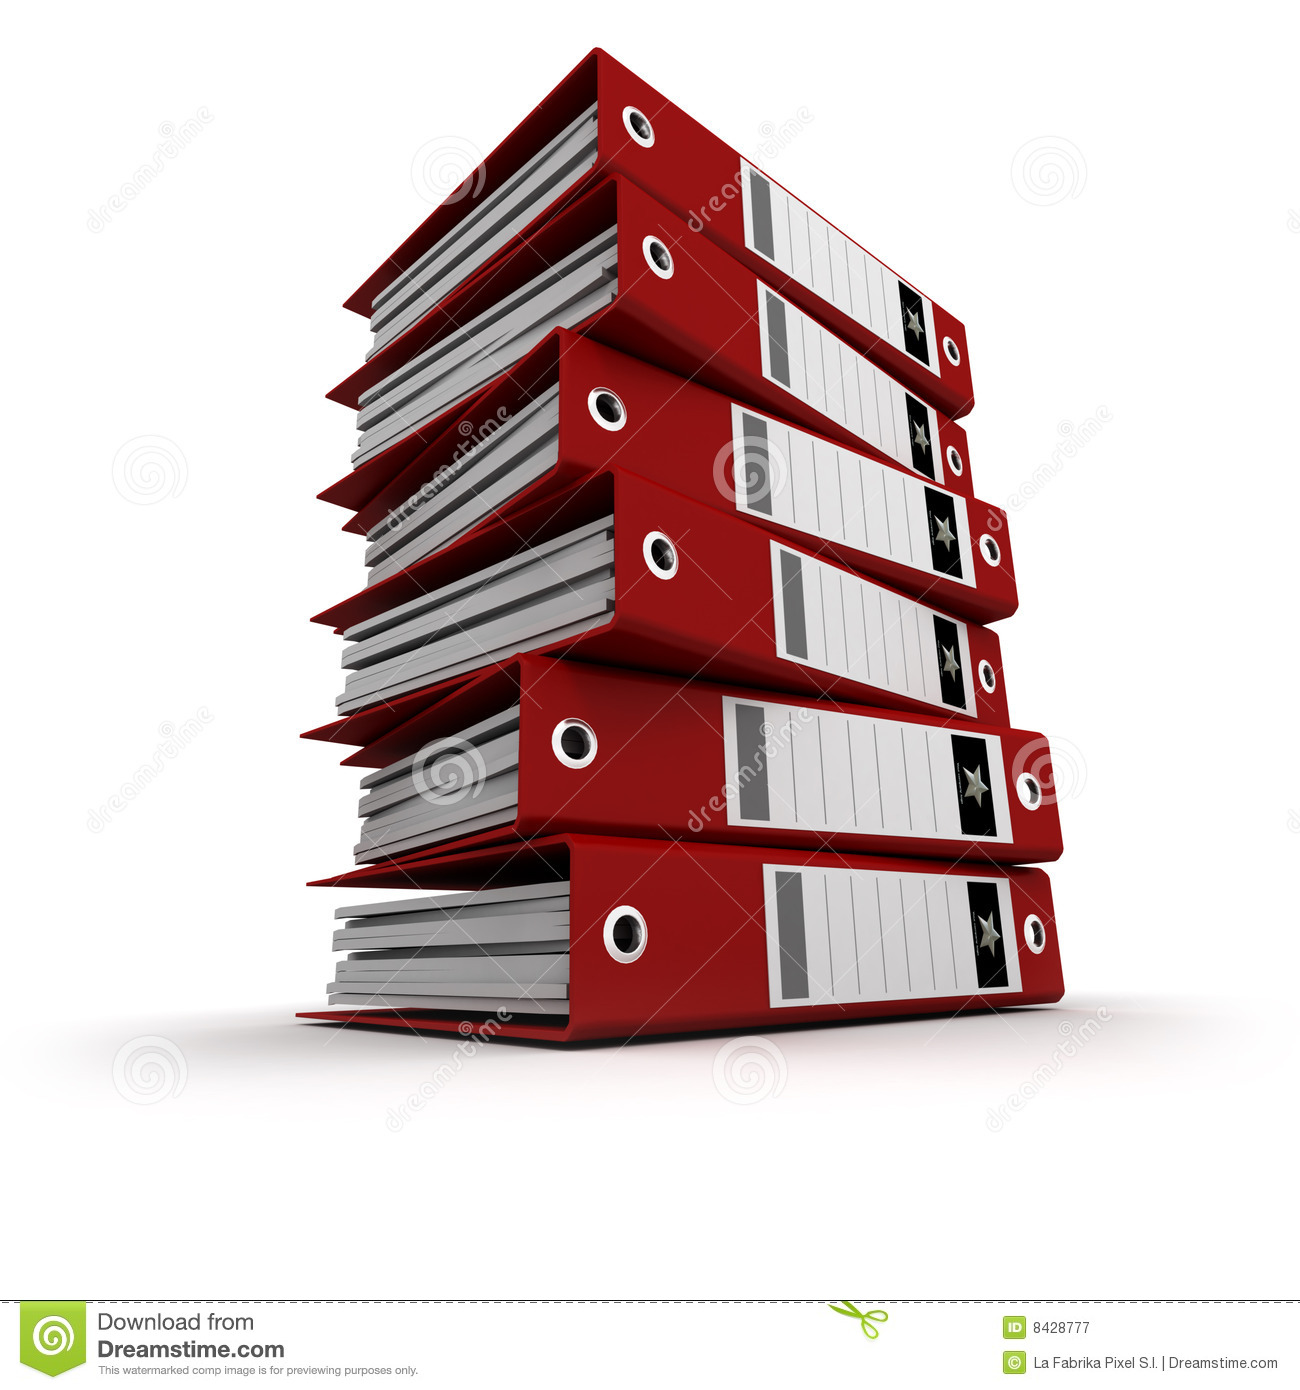 Red ring binders on a pile